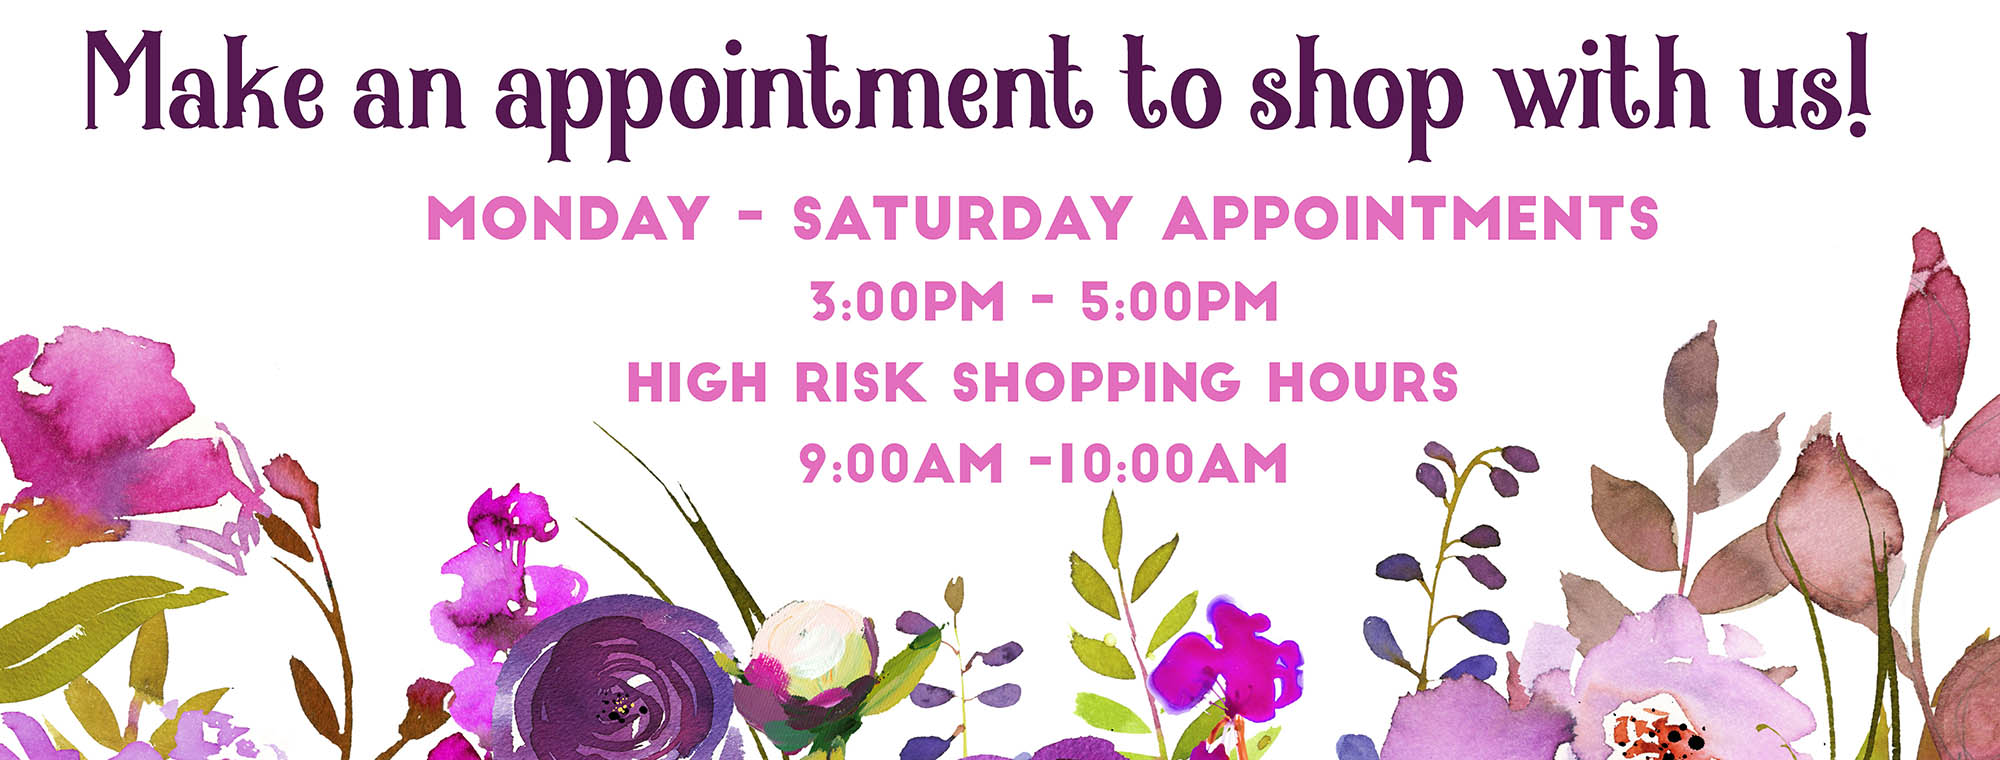 offering appointment shopping